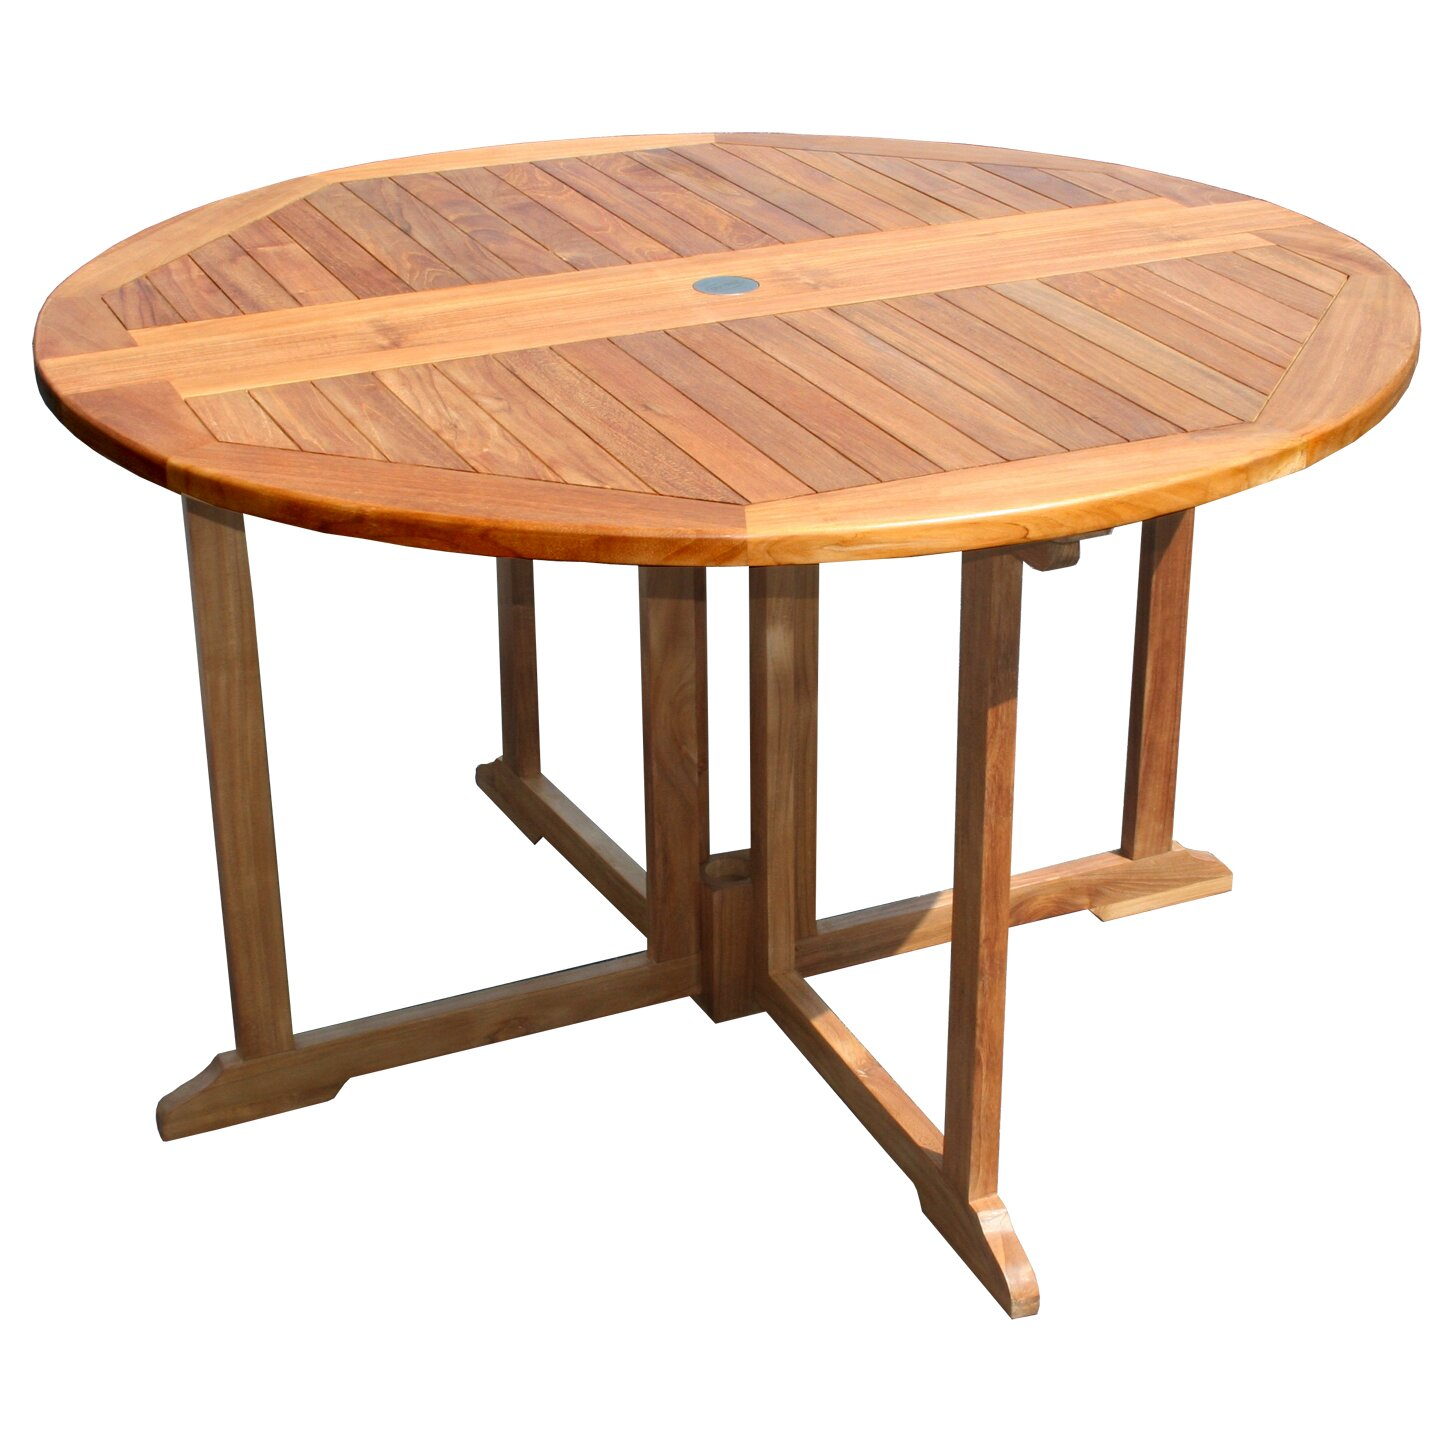 Teak Oval Dining Table Chicteak Butterfly Chat Table Reviews Wayfair